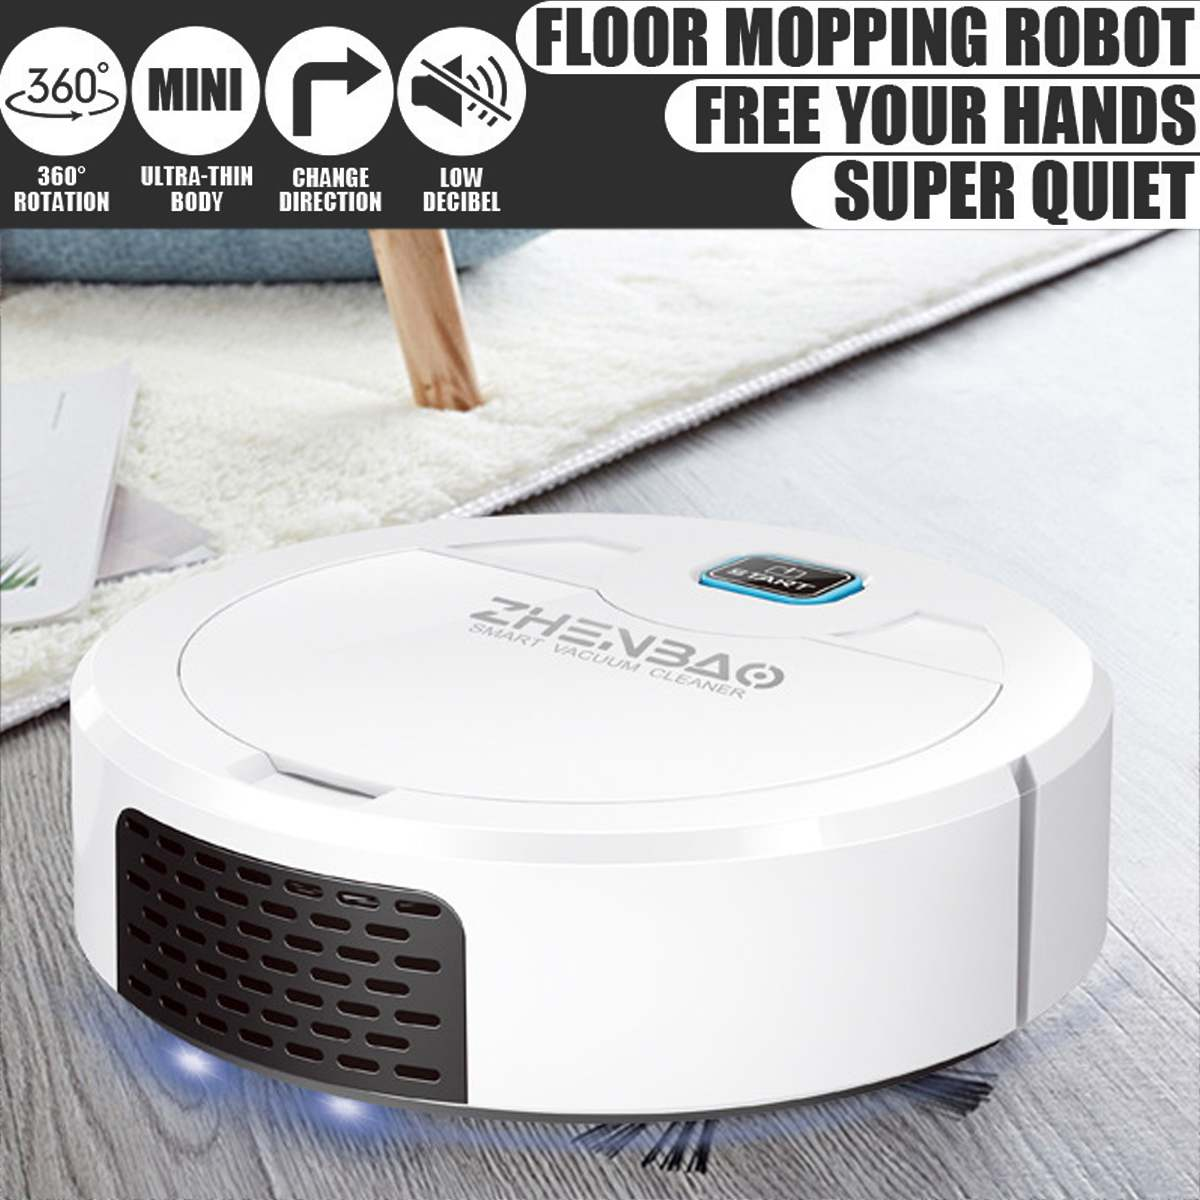 Фото - Smart Robot Vacuum Cleaner Rechargeable Household Automatic Sweeping Machine Home Floor Carpet Cleaning Robots Dust Sterilize xiaomi mijia 1s mi robot vacuum cleaner for home automatic sweeping charge smart wifi app remote control dust sterilize rc cleaner